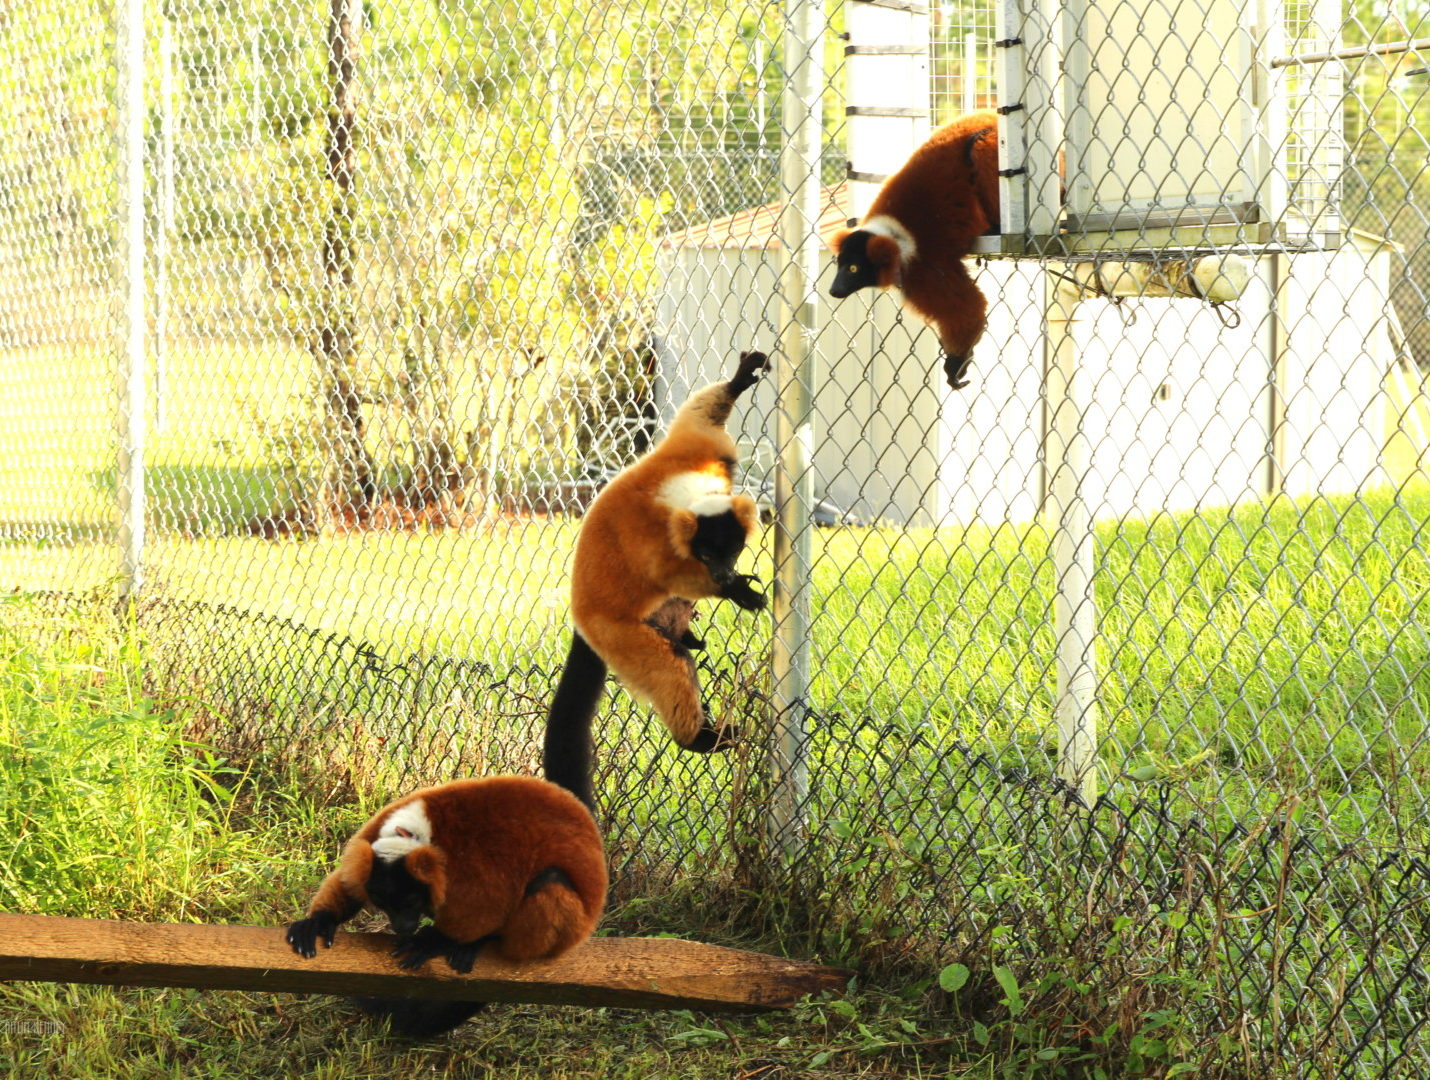 Red ruffed lemurs clinbing down chain link fencing